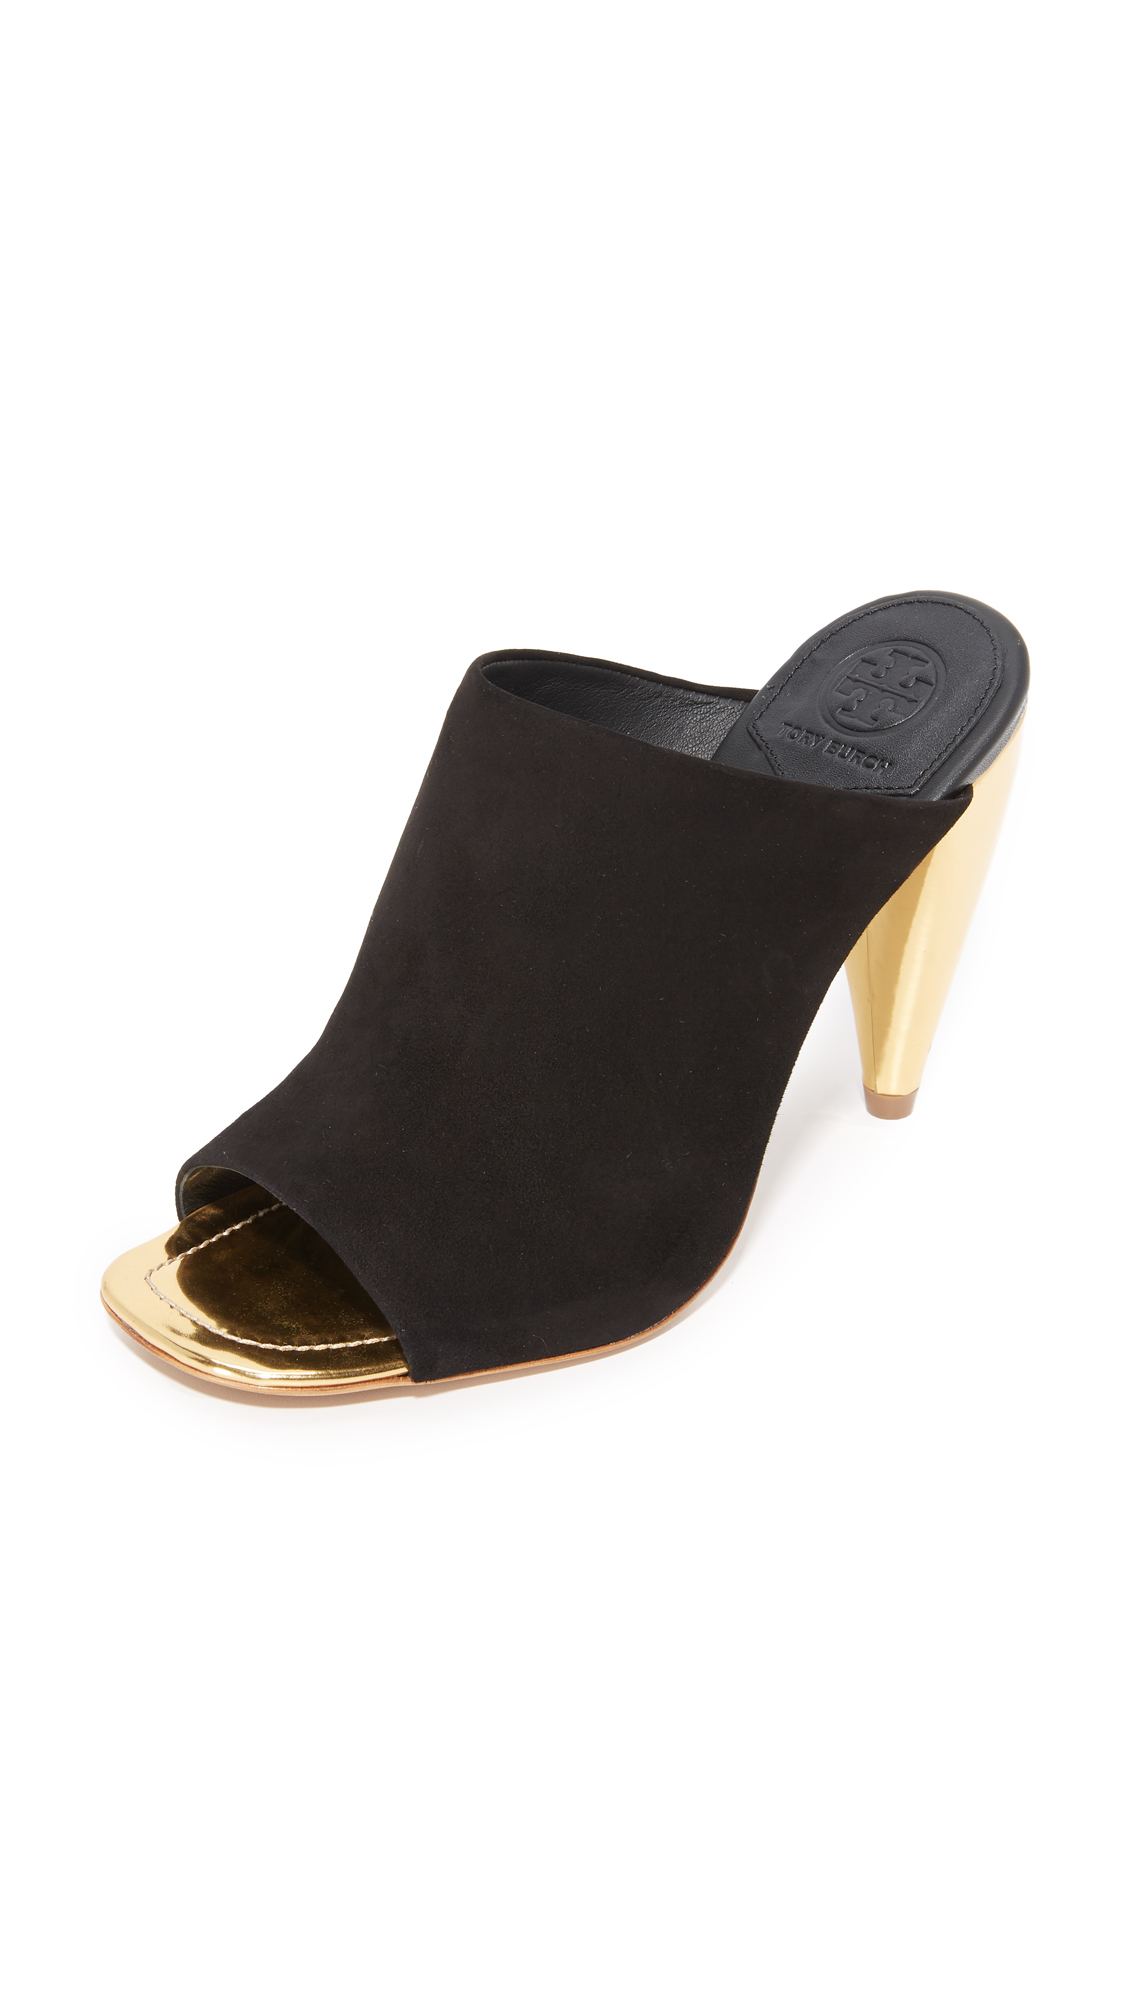 tory burch female tory burch ellis mules black